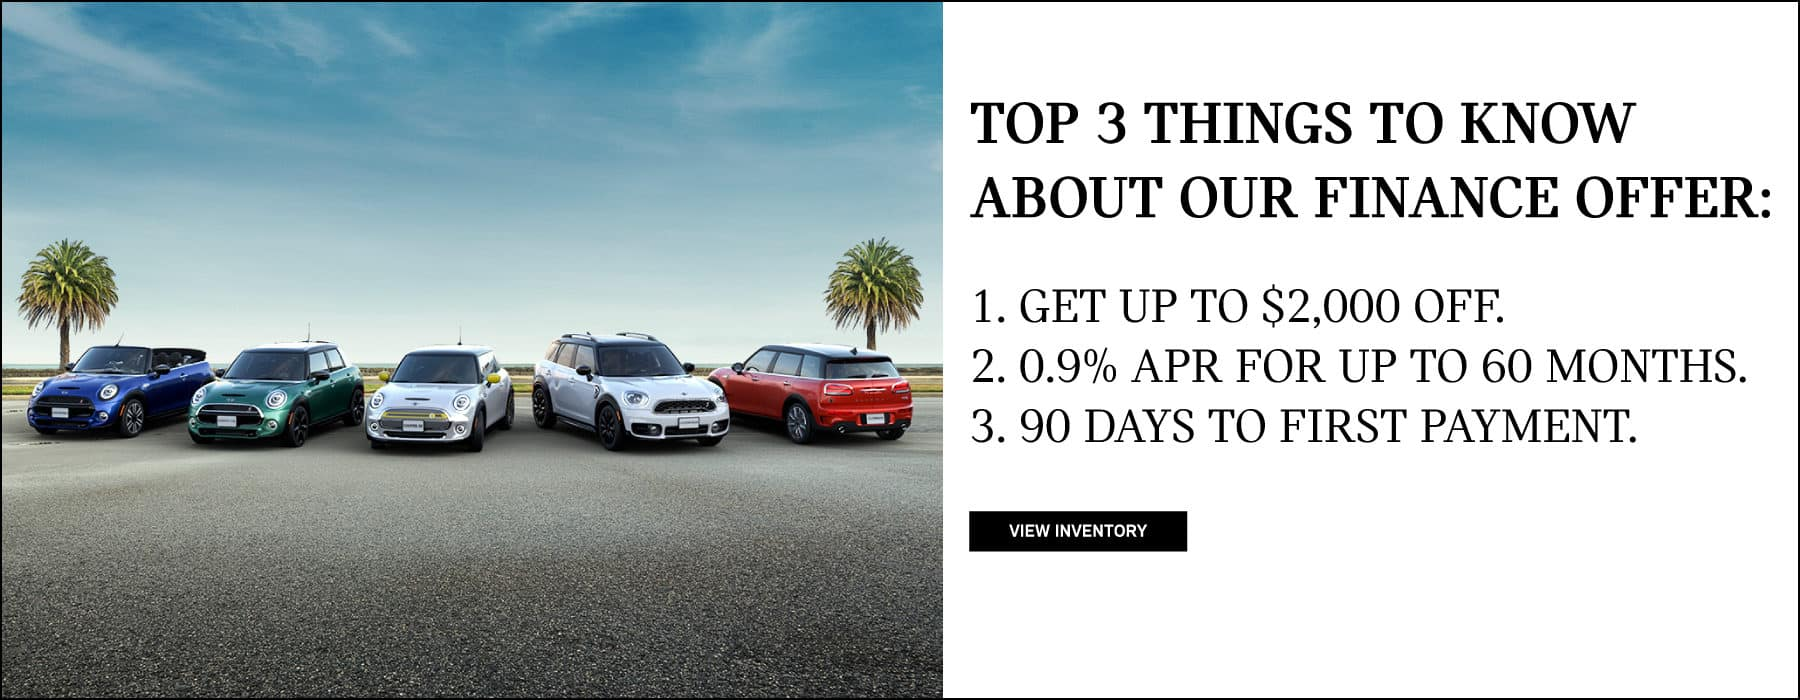 MINI Finance offer. $2,000 off, 0.9% APR up to 60 months, and 90 days to first payment.